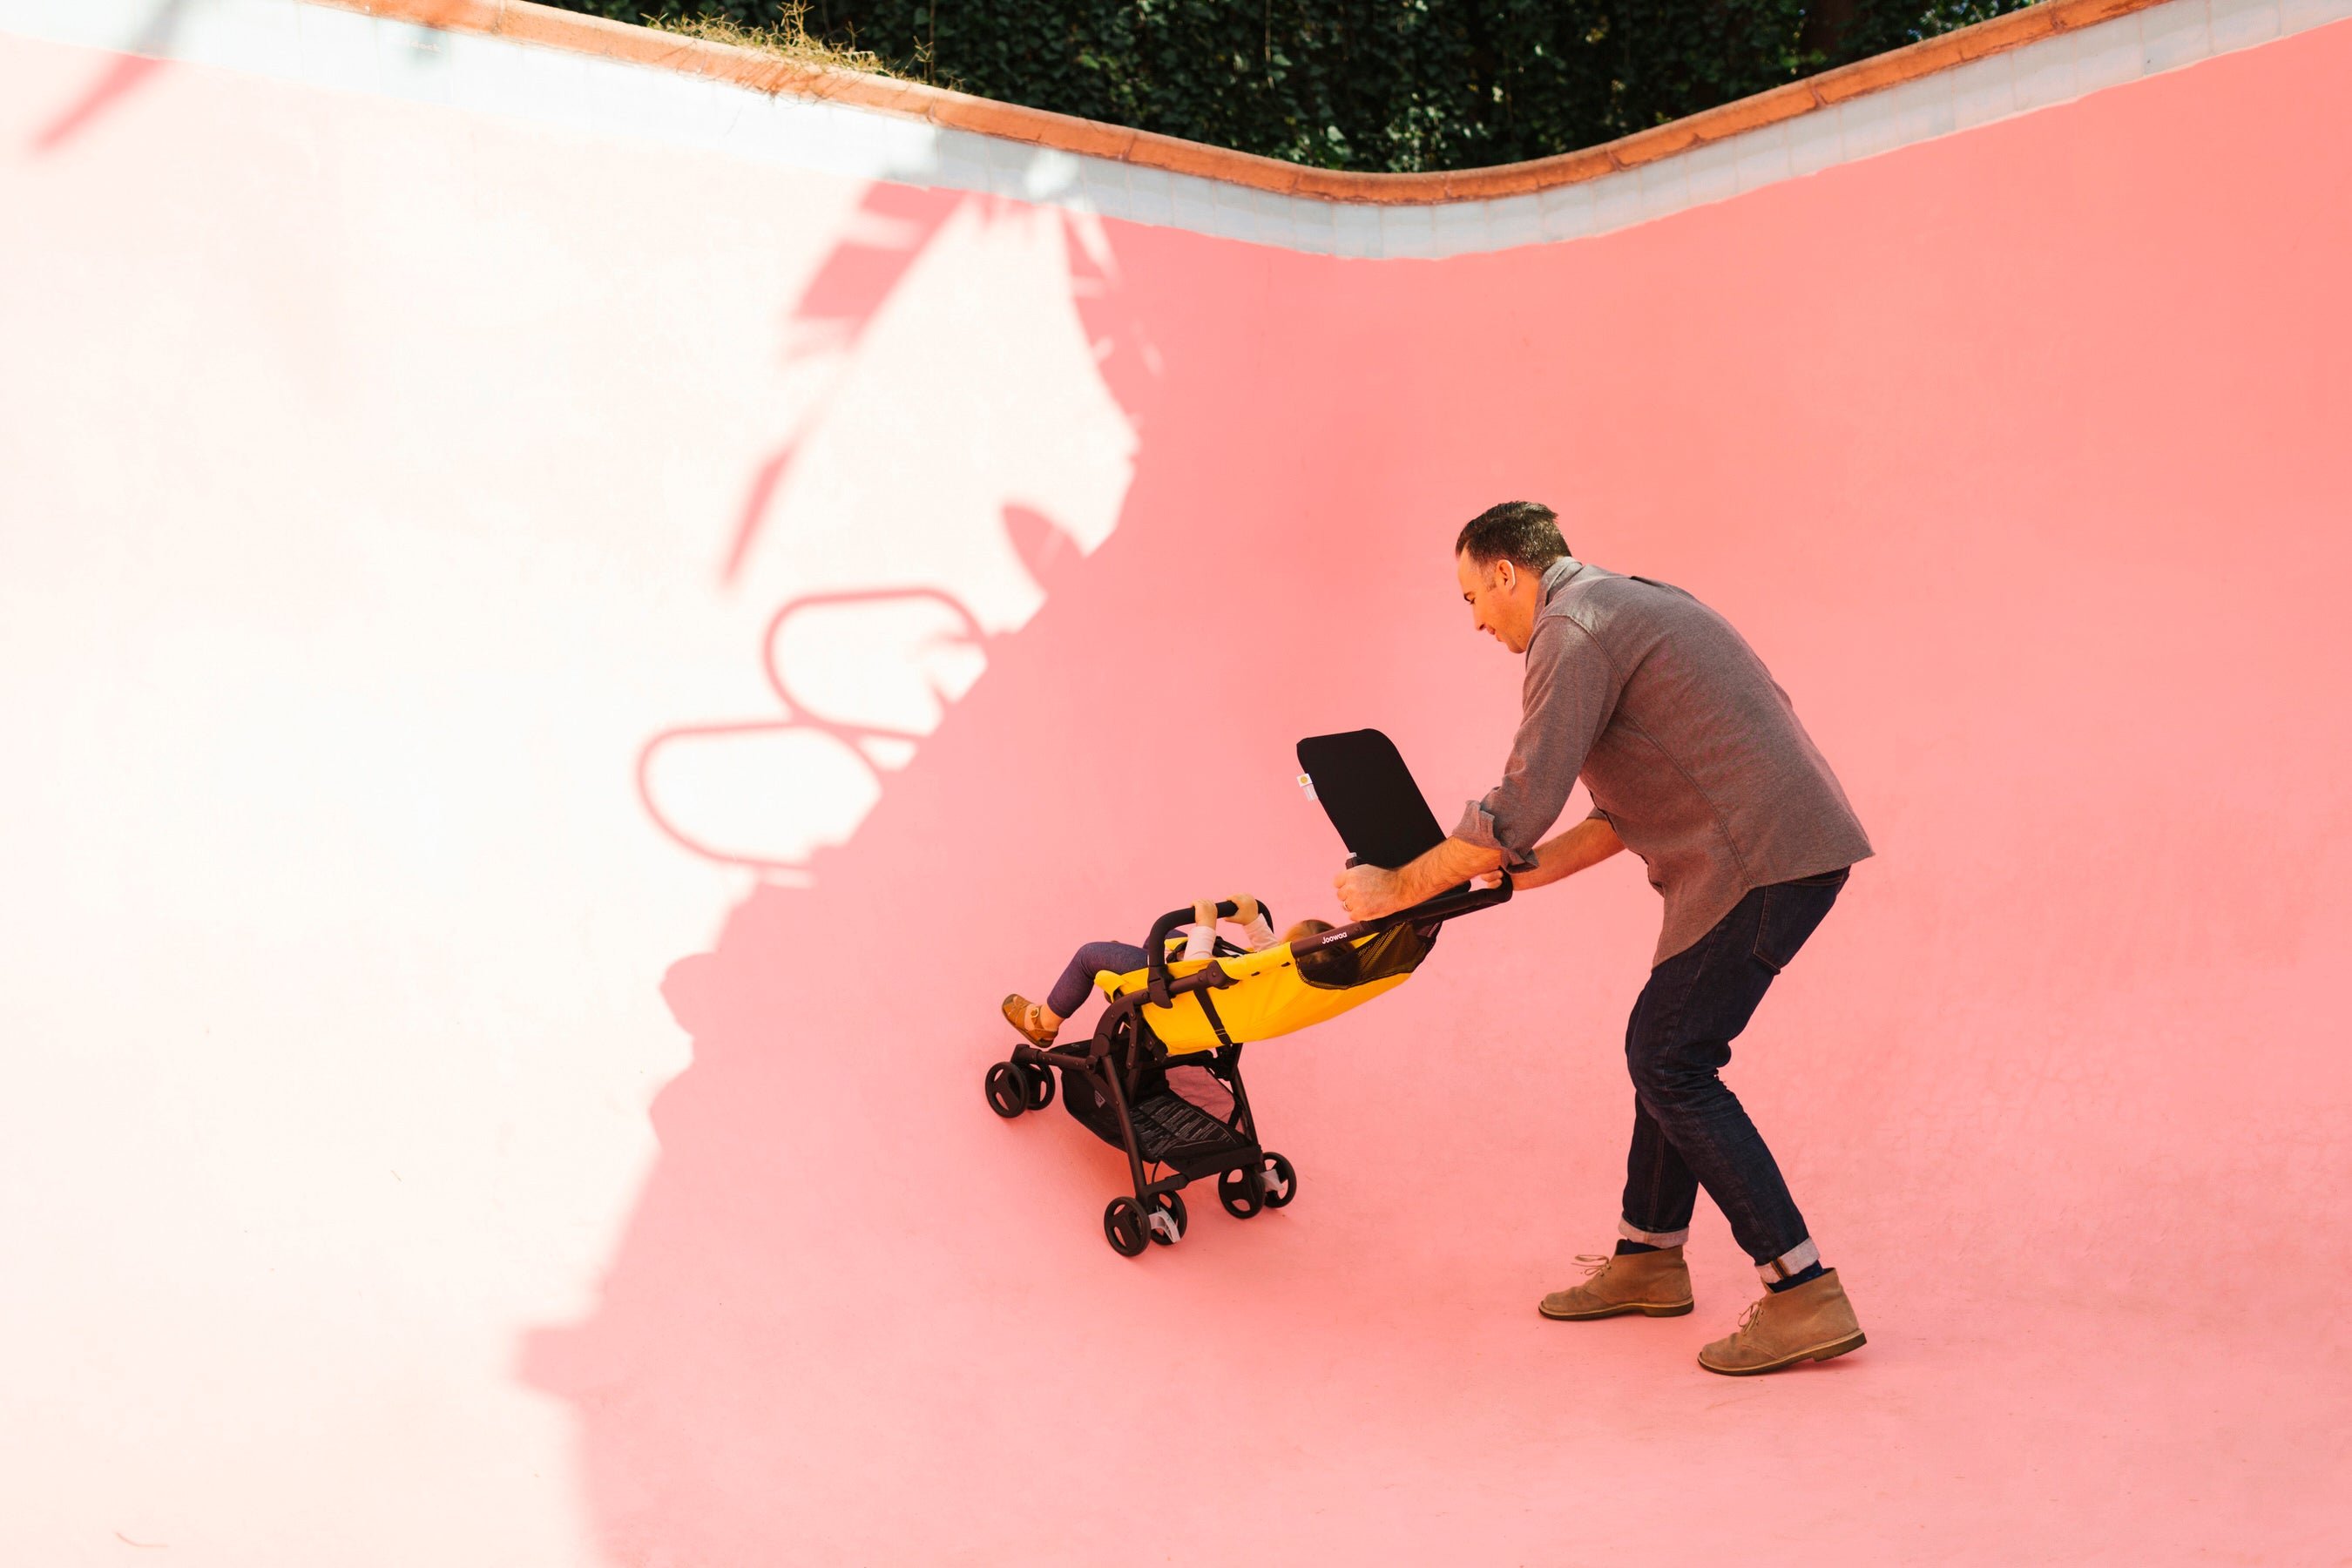 Eric pushes his daughter in their empty pink swimming pool.